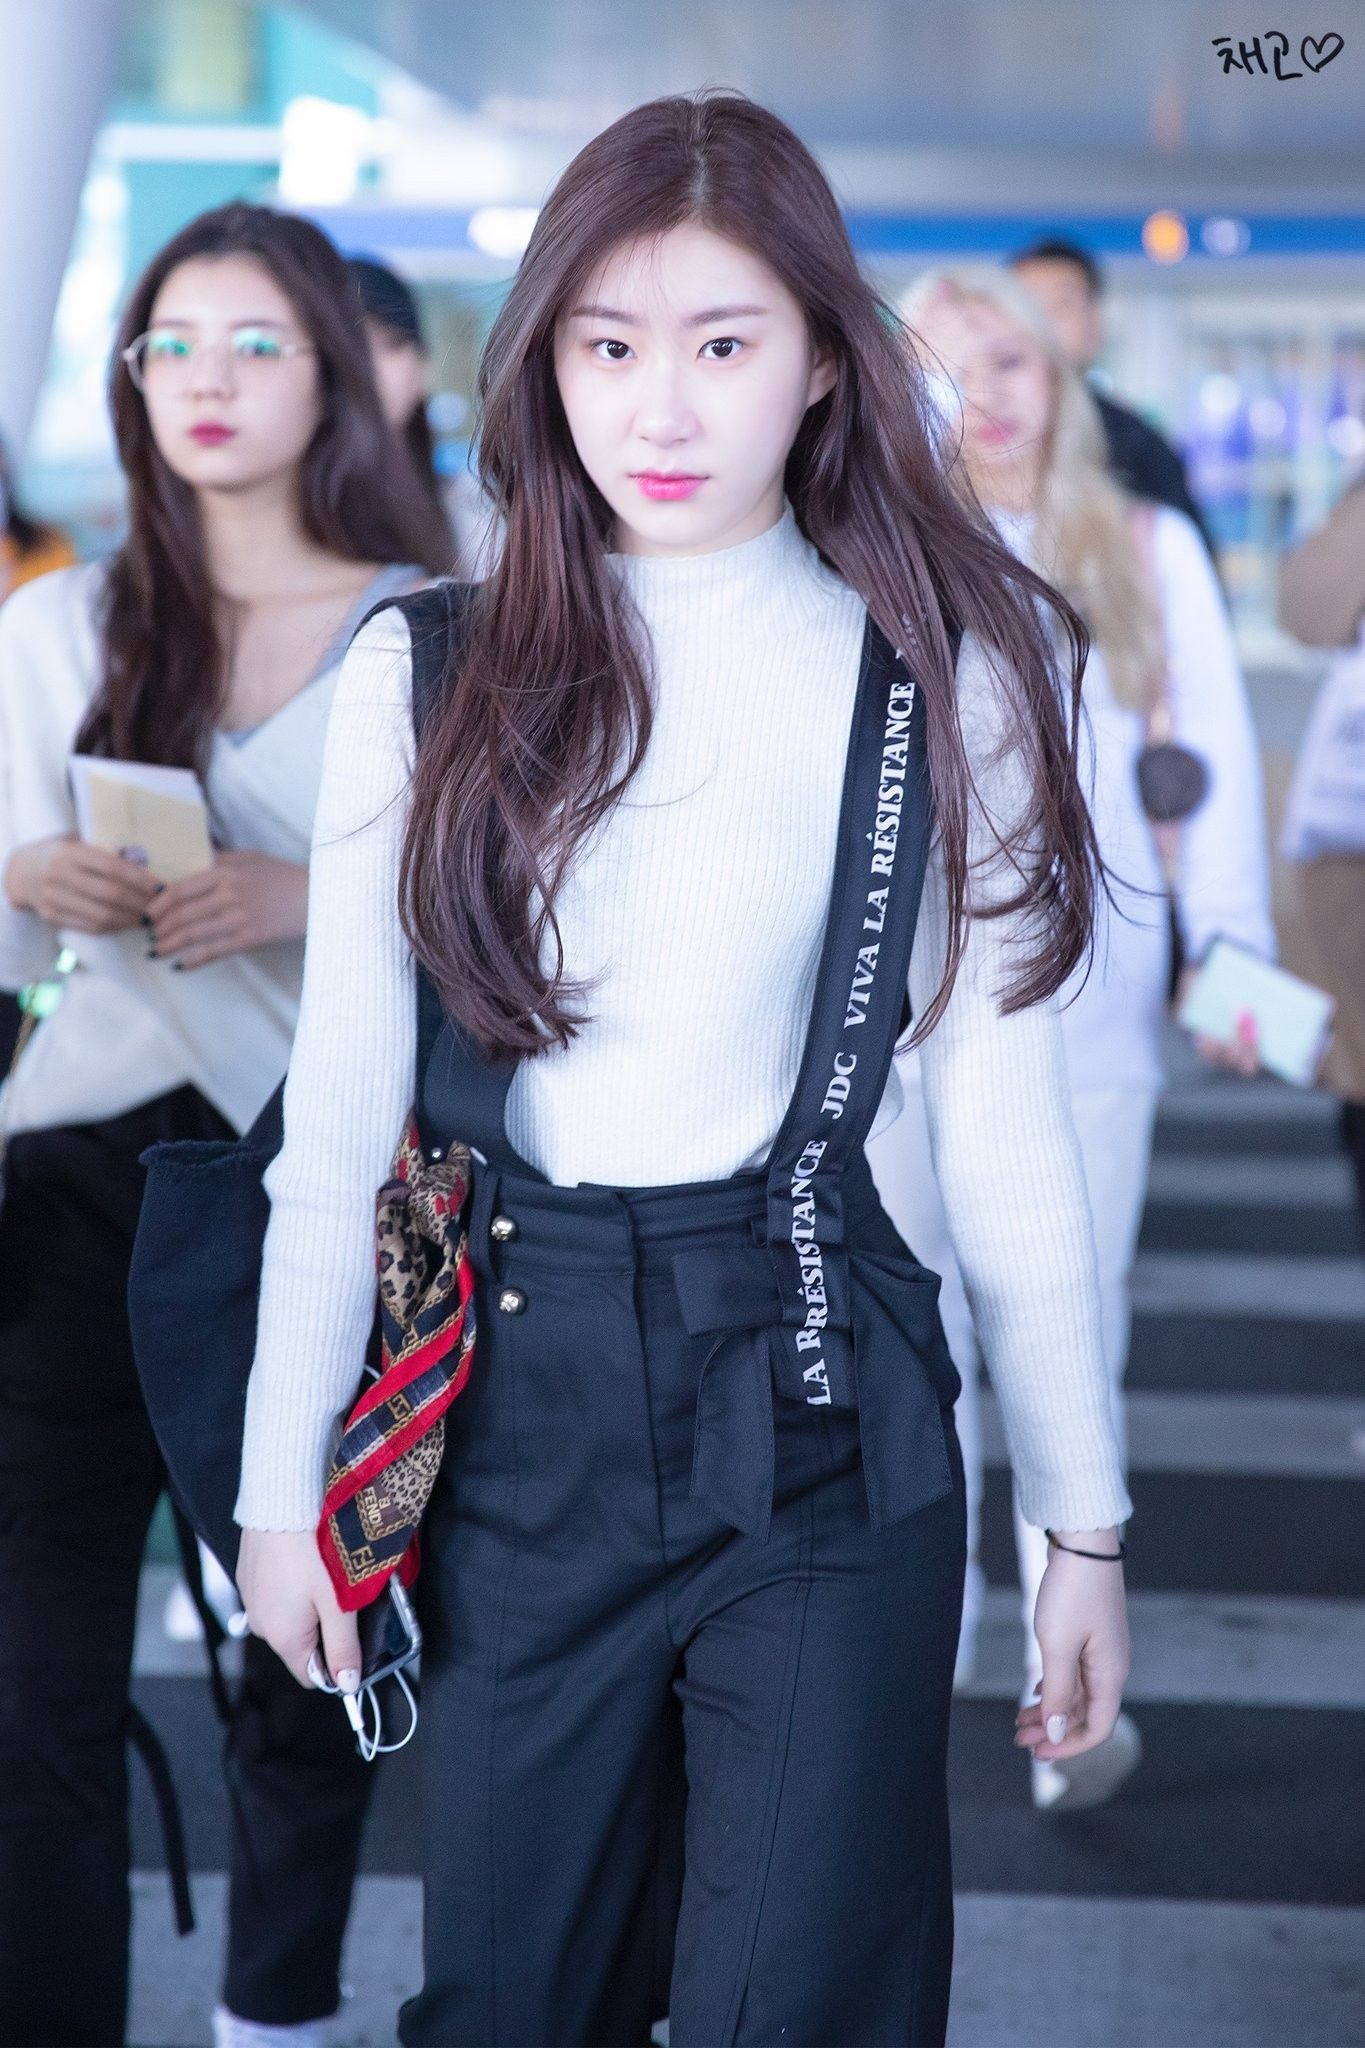 Itzy Chaeryeong 191103 Incheon Airport From Indonesia Itzy Fashion Girl Fashion